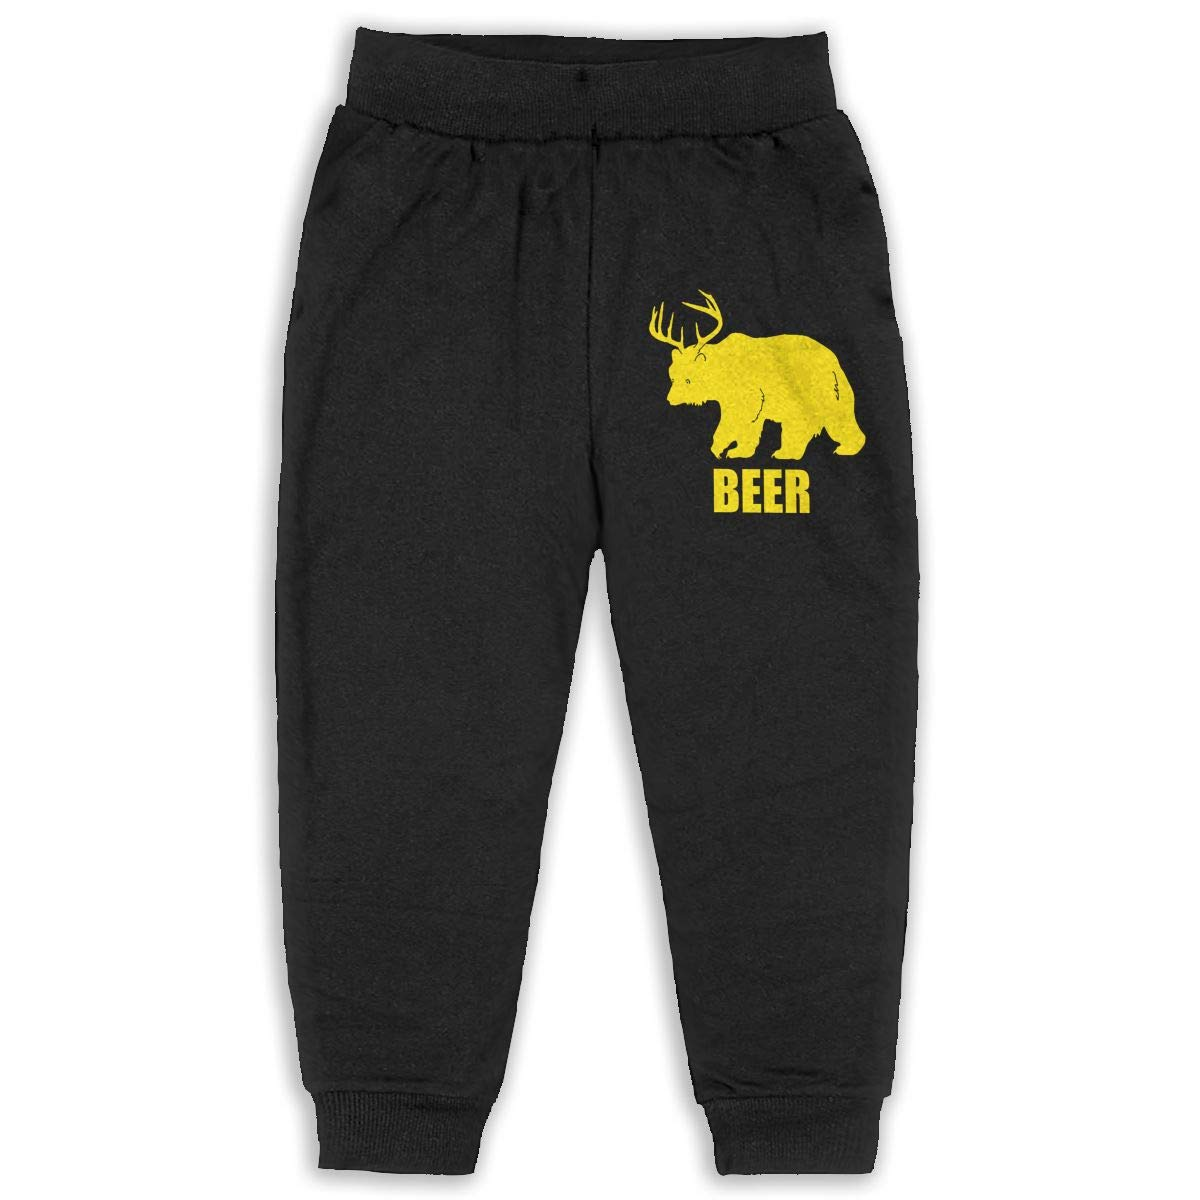 Uyikuvt Sweatpants Yellow Beer Bear Deer Pattern Cotton Toddler Active Jogger Full-Length Regular Size Pants Kids